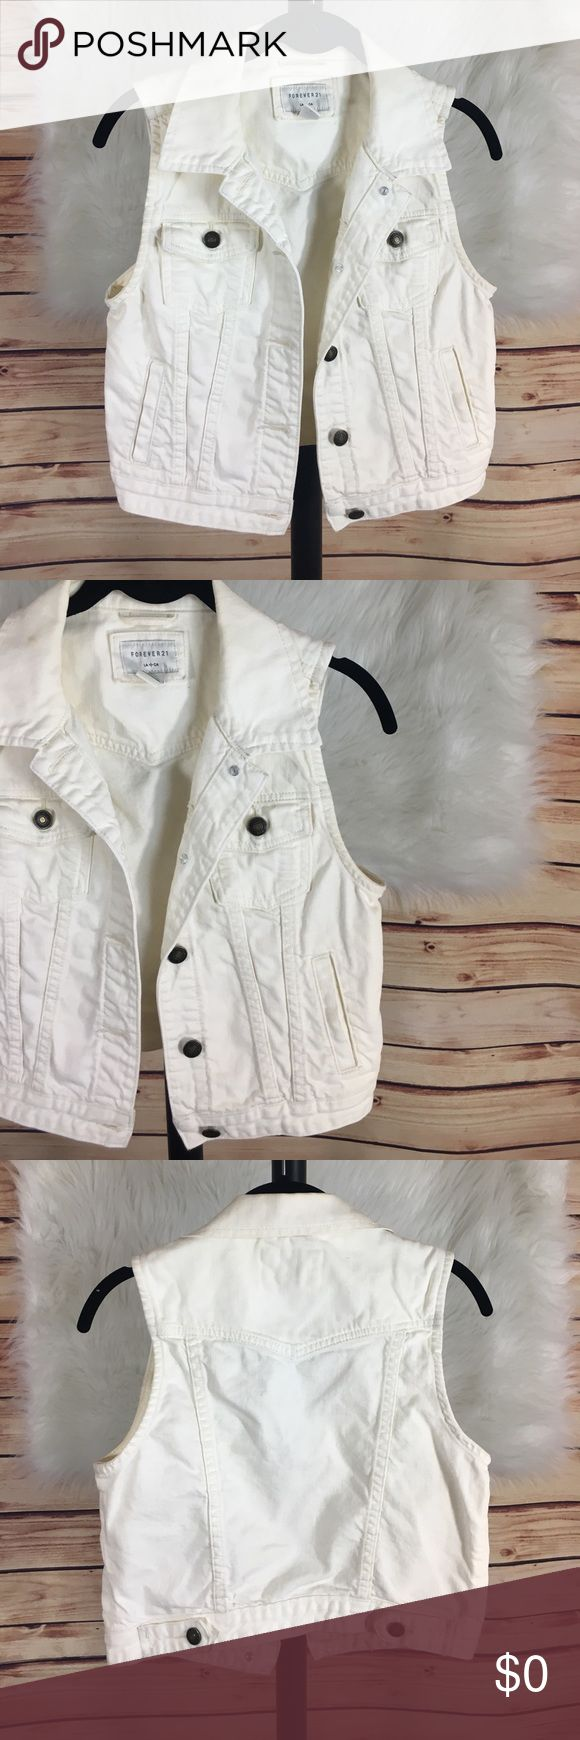 "✨ Forever 21 white denim jacket / vest ✨Newly listed items are priced to move.. please help me clear out my actual closet 😉 Brand: Forever 21 Size: S Type: white denim jacket / vest  Details: all front bronze buttons function, four front pockets  Bust measurement: 15.5"" across (closed) Length from collar to bottom: 15"" Length from shoulder to bottom: 20"" Condition: preloved: good *small mark on collar as pictured    ✨Build a bundle with all your likes and use the automatic bundle discount…"